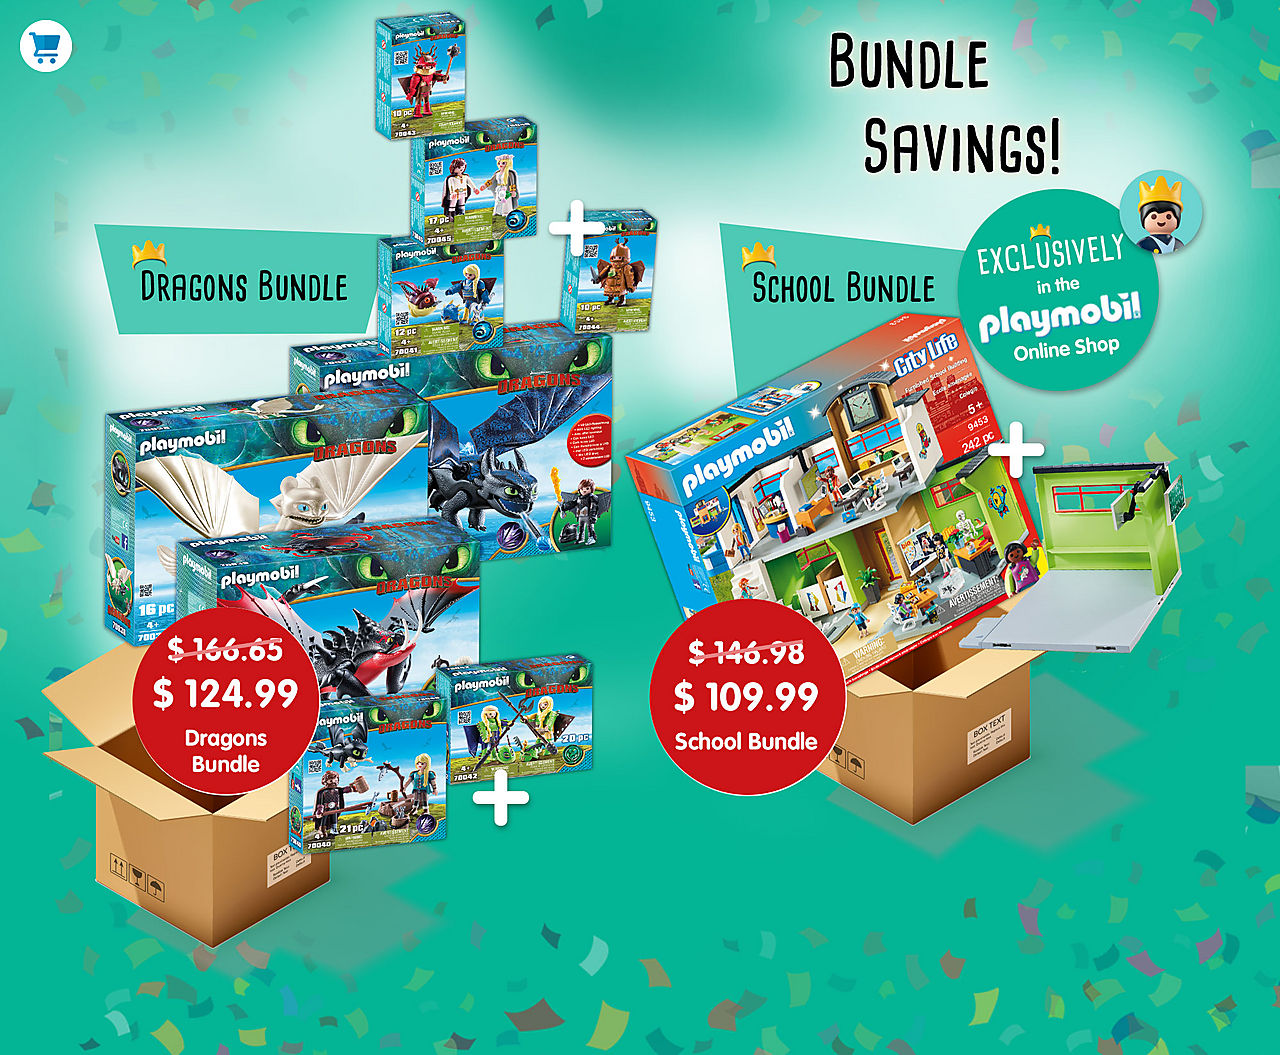 Discover and save on many bundles like the School Bundle which includes the School 9453 + Gym 9454 and History Class 9455 for only $134.99 instead of $209.97